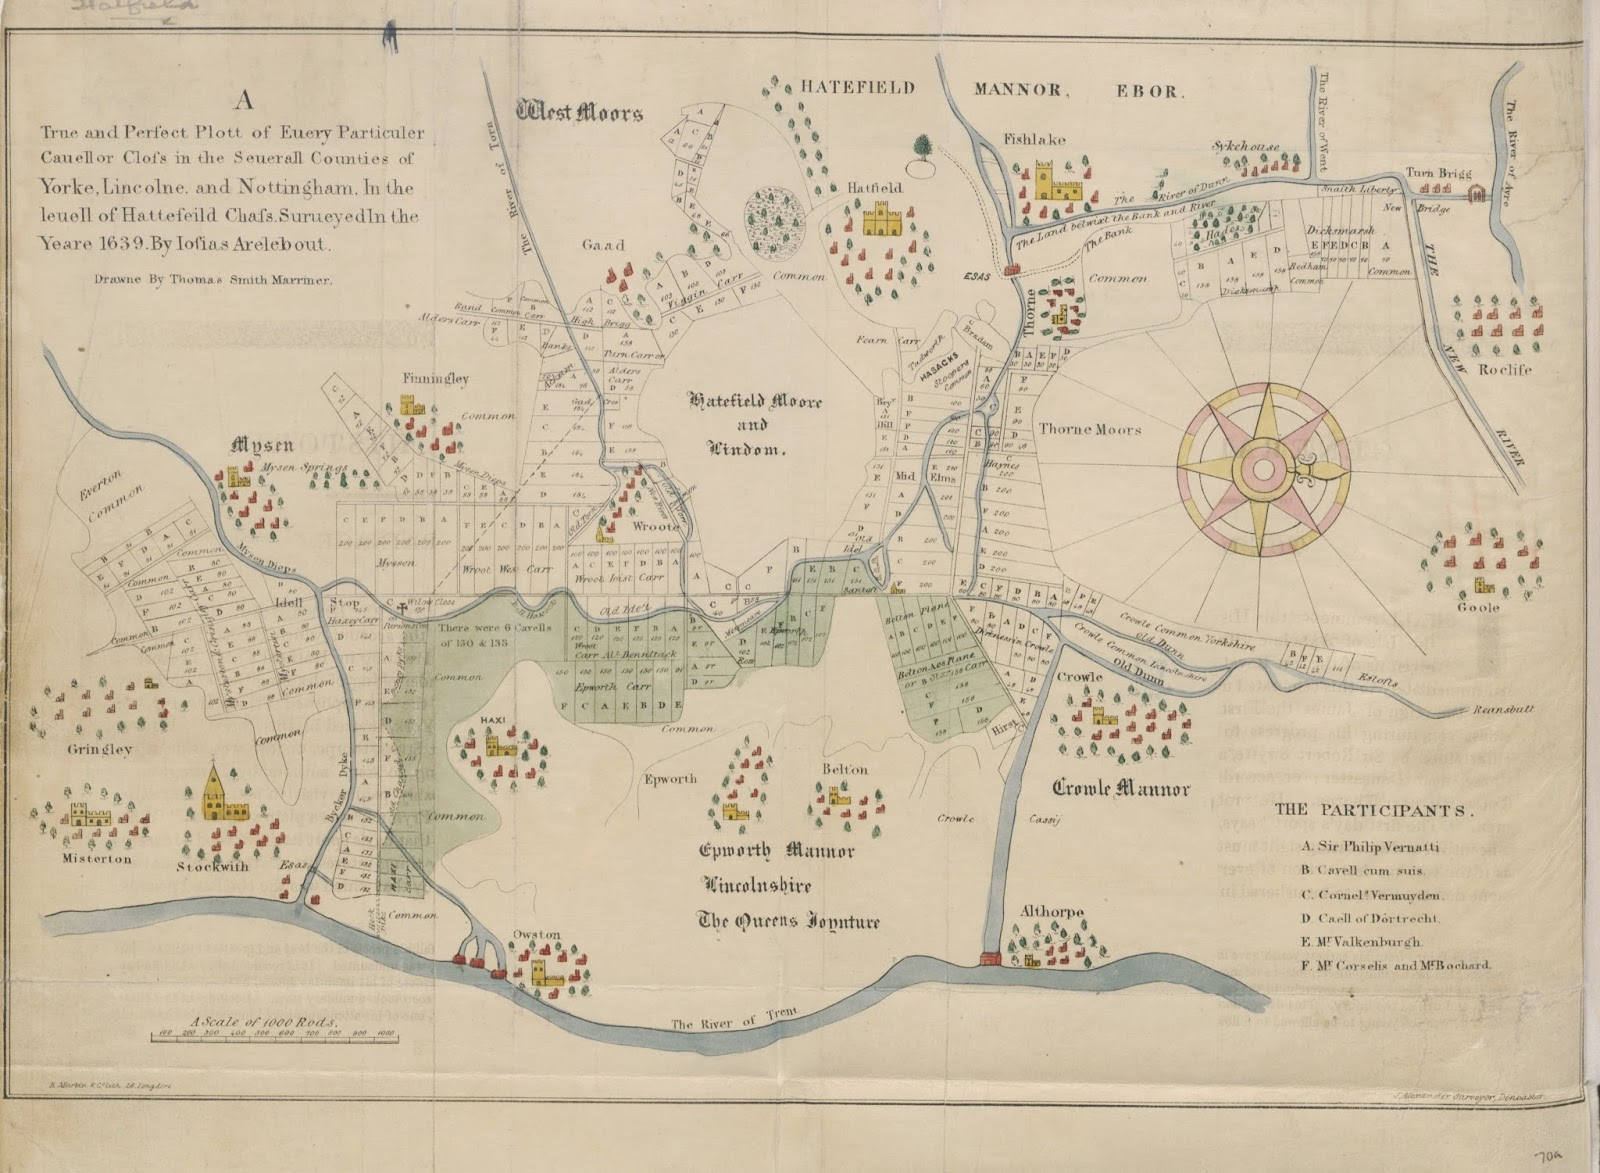 Old map of Isle of Axholme showing rivers and drains